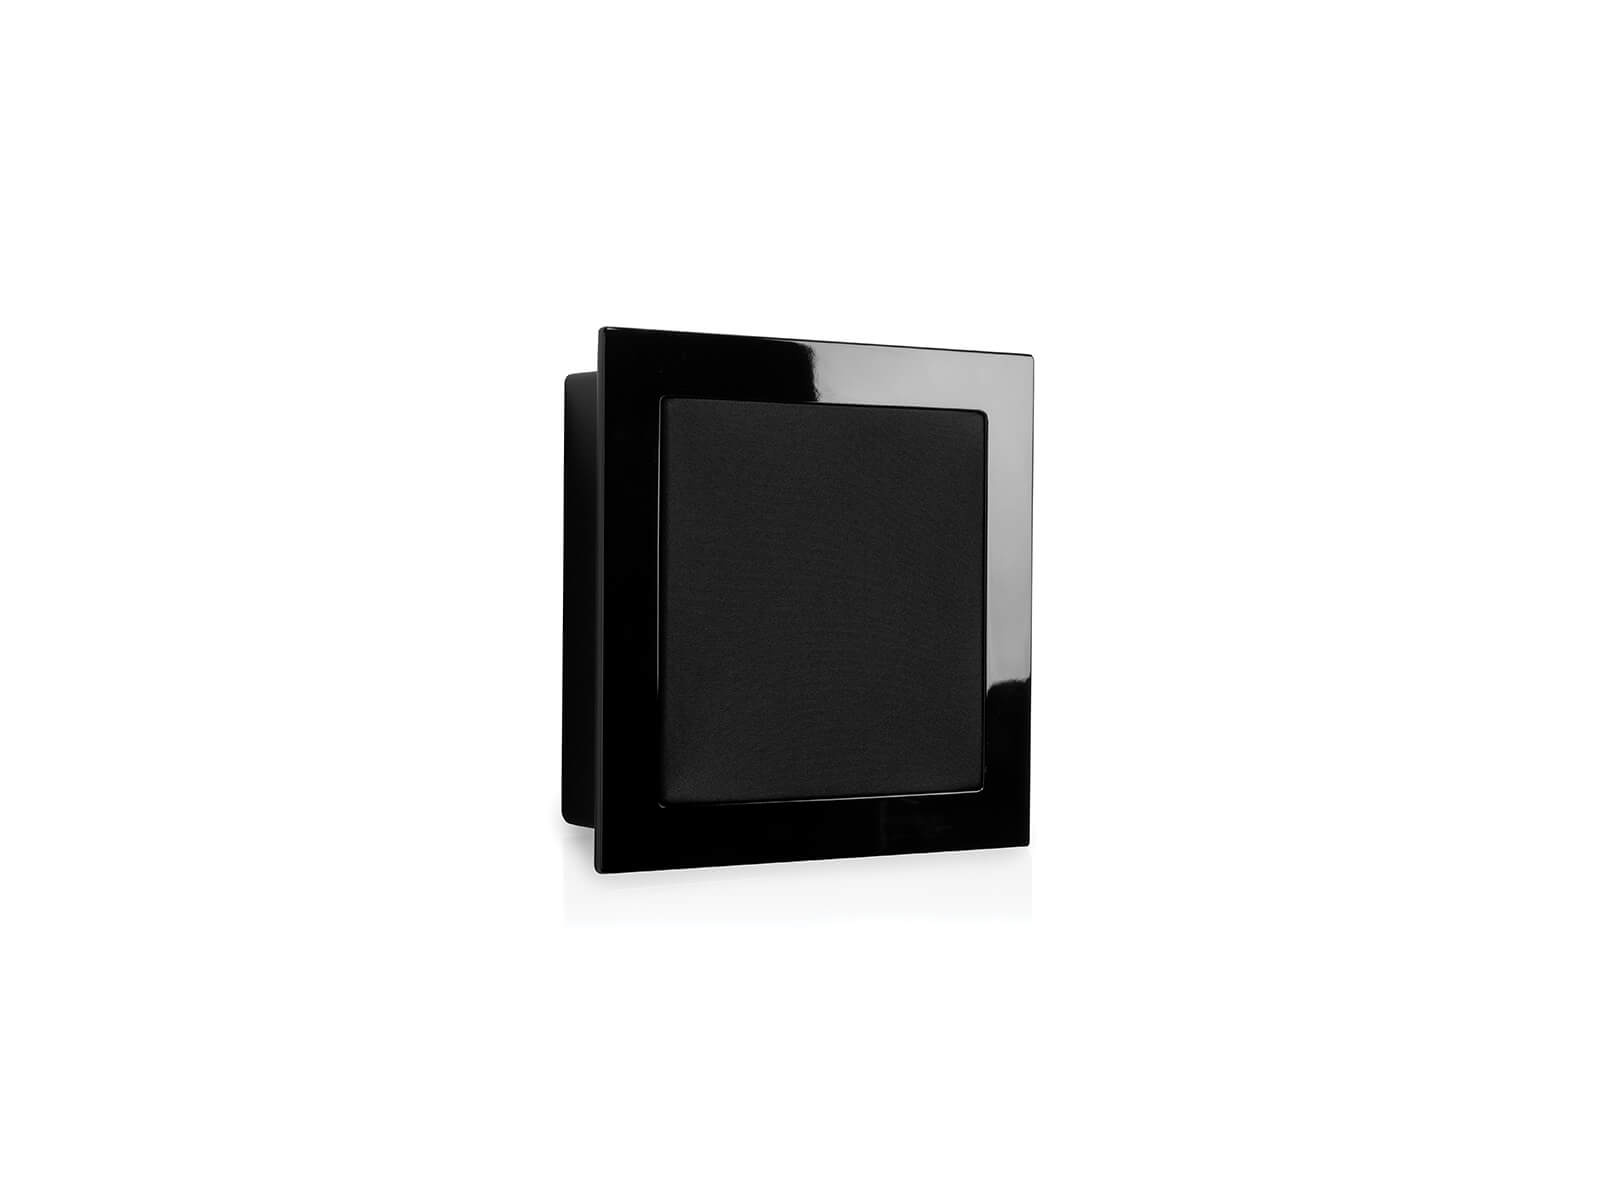 SoundFrame SF3, in-wall speakers, with a high gloss black lacquer finish.